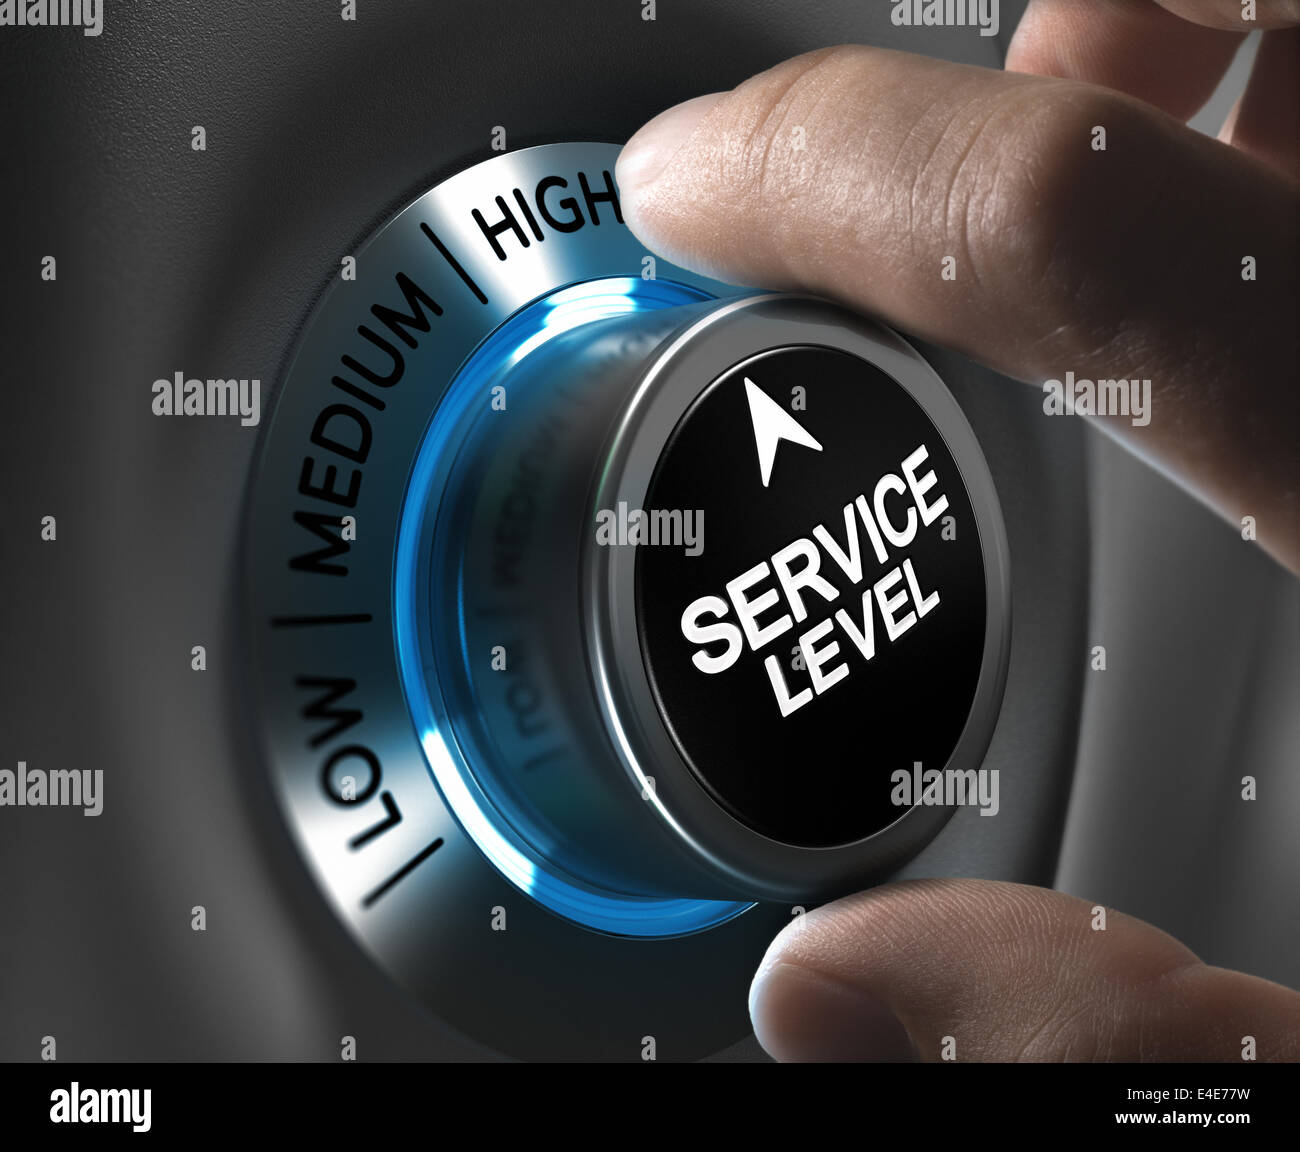 Button service level pointing the high position with blur effect plus blue and grey tones. Conceptual image for - Stock Image